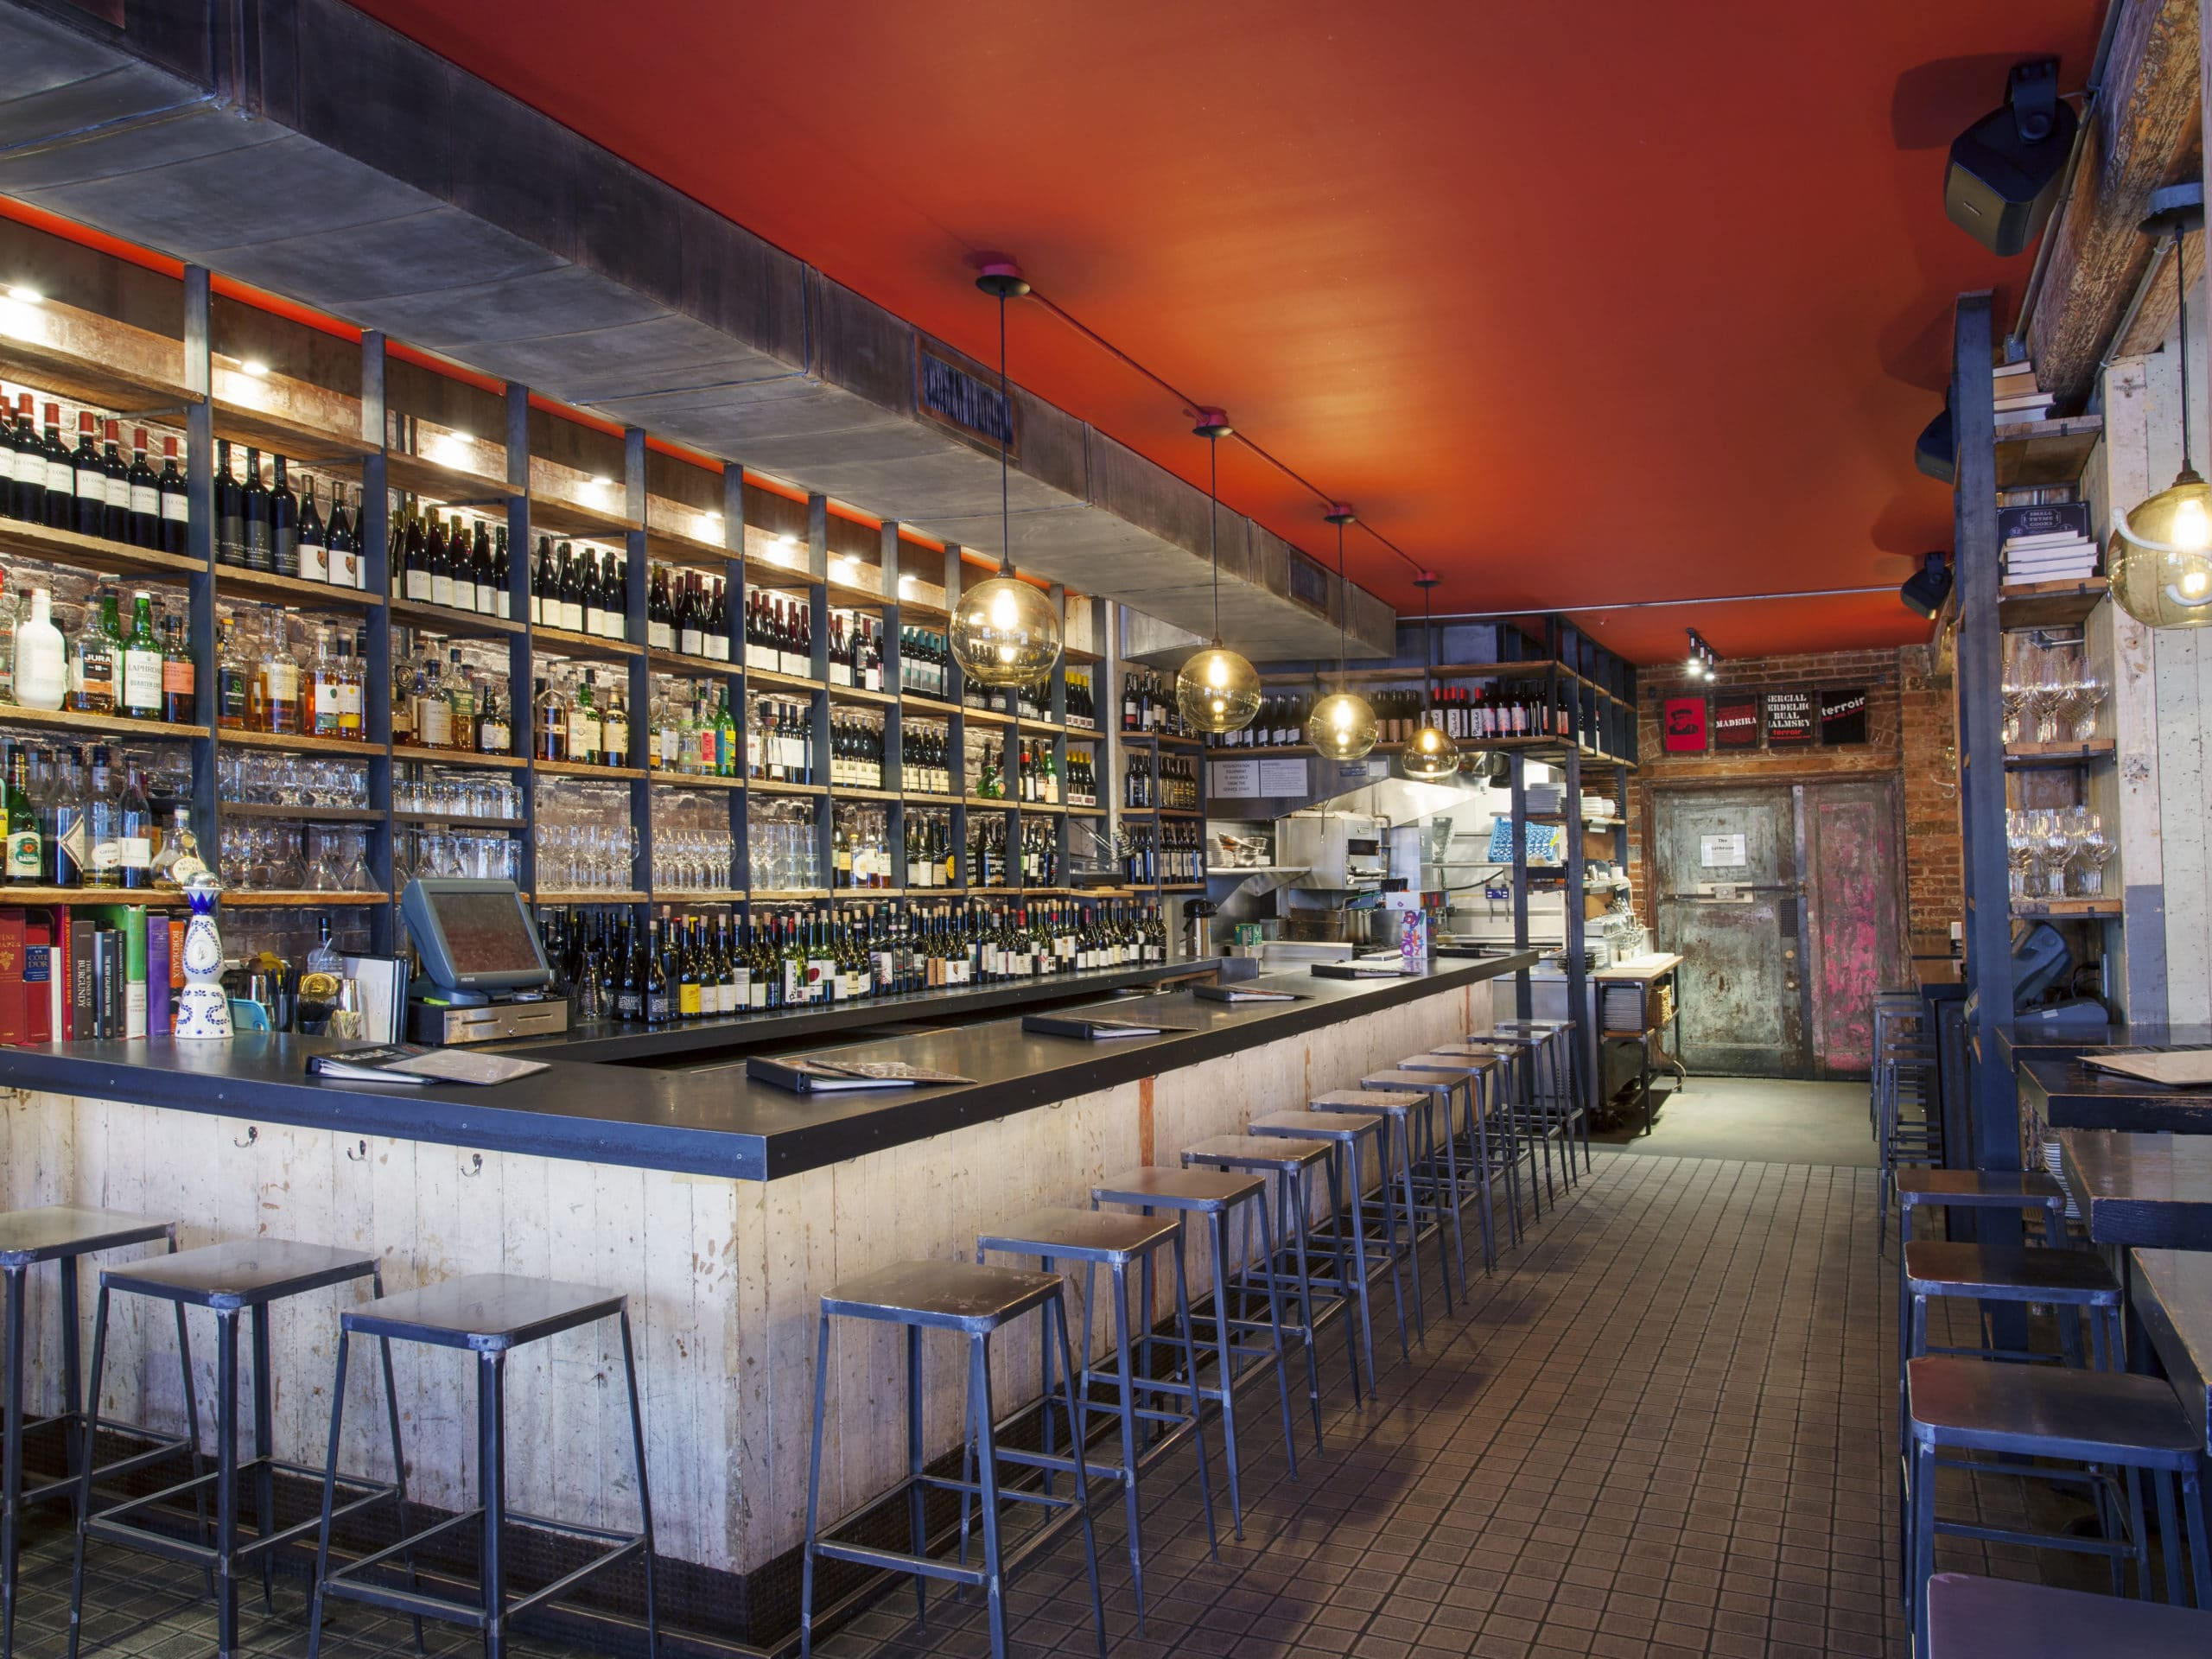 Residents wine bar at 30 Warren luxury residences in NYC. L-shaped bar with stools and wine bottles on the back shelves.